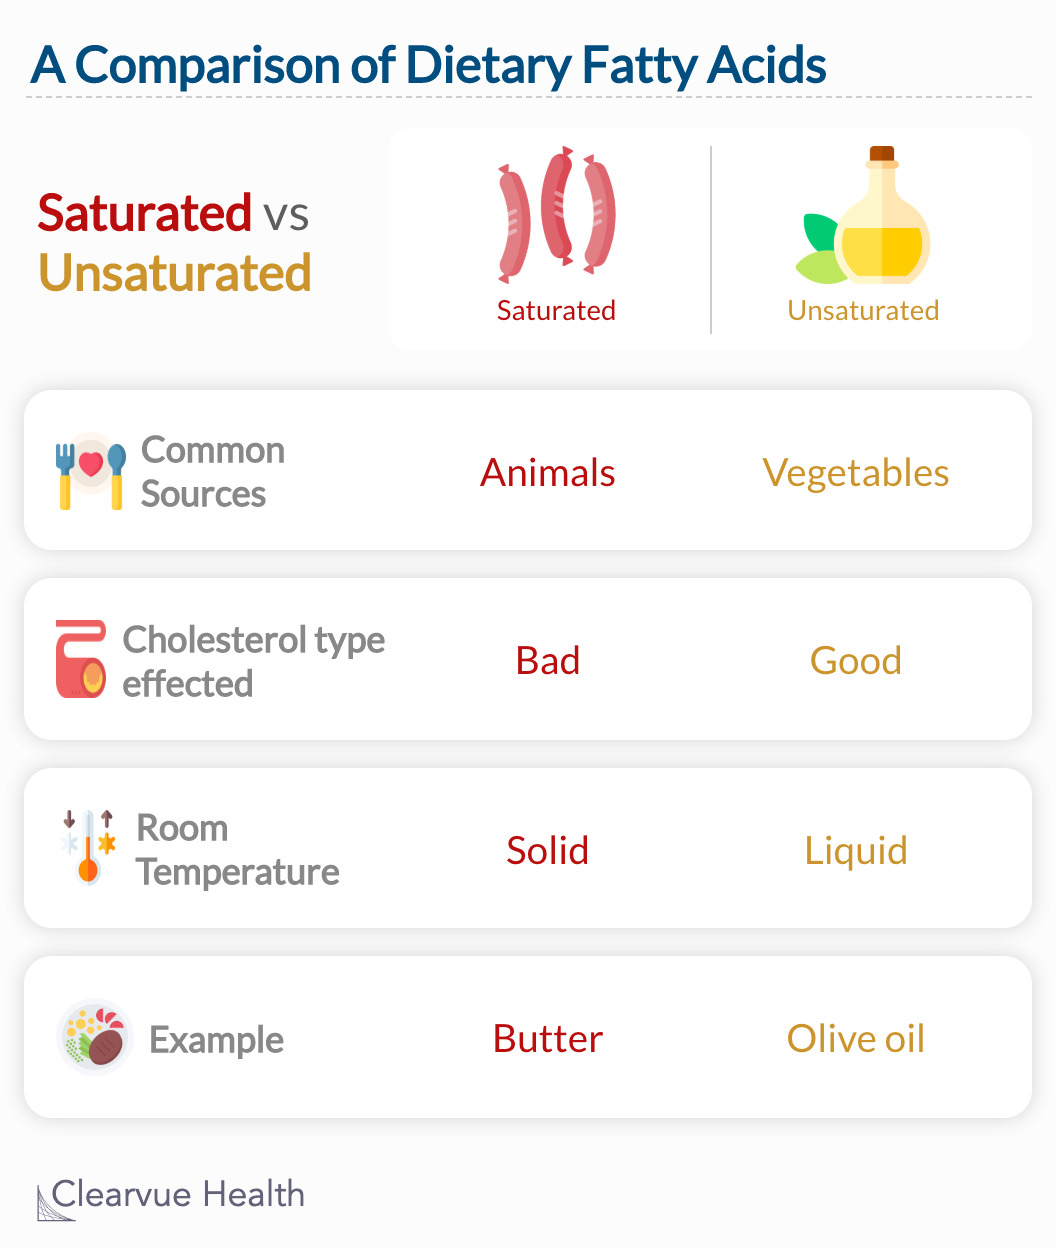 A basic comparison of saturated and unsaturated fatty acids